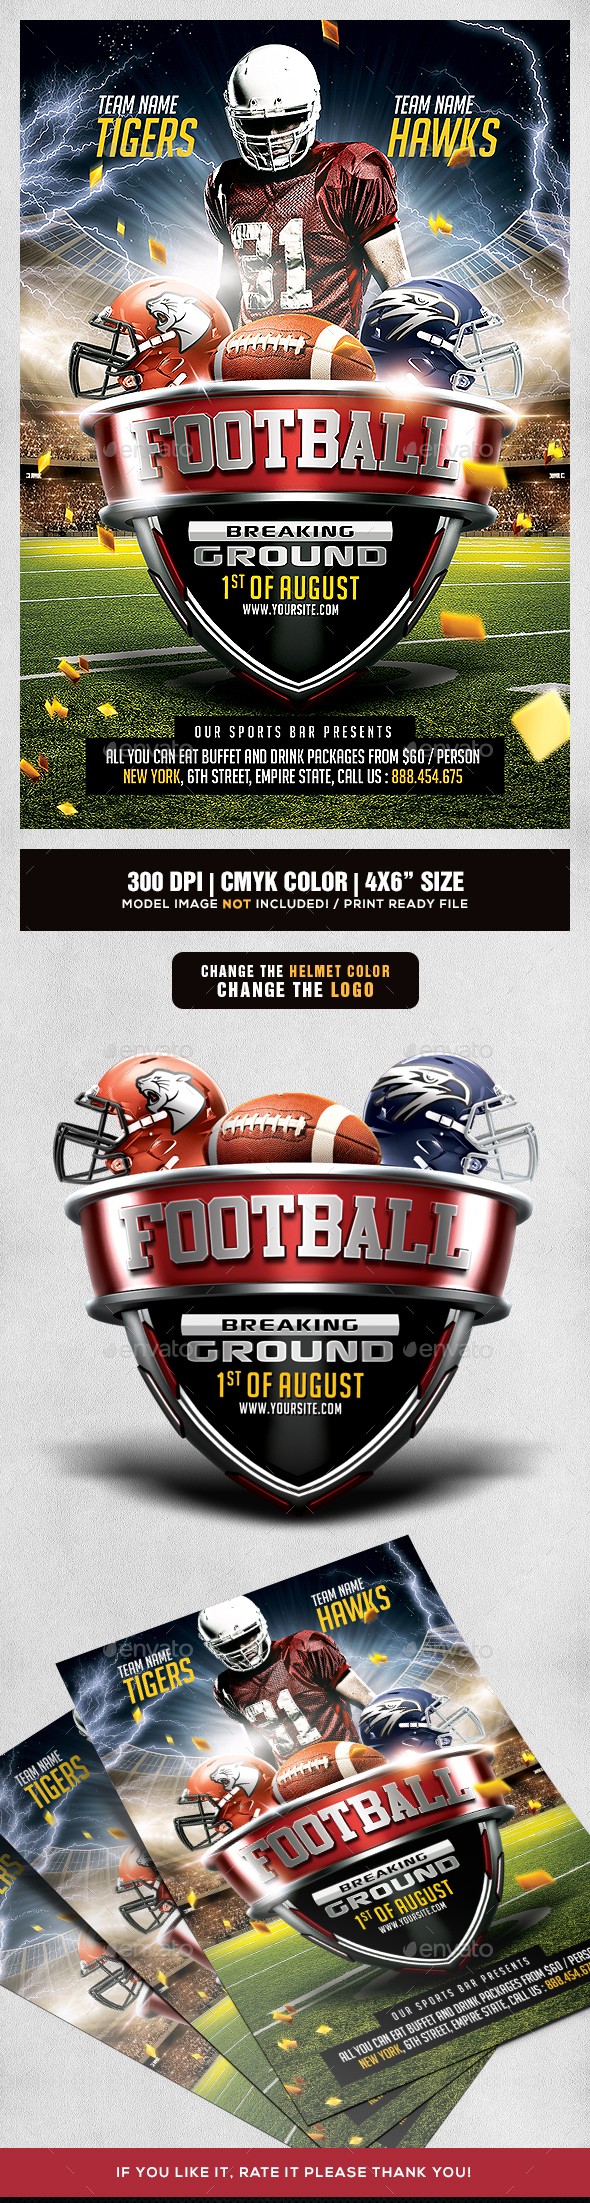 American Football Game Flyer Template - Sports Events